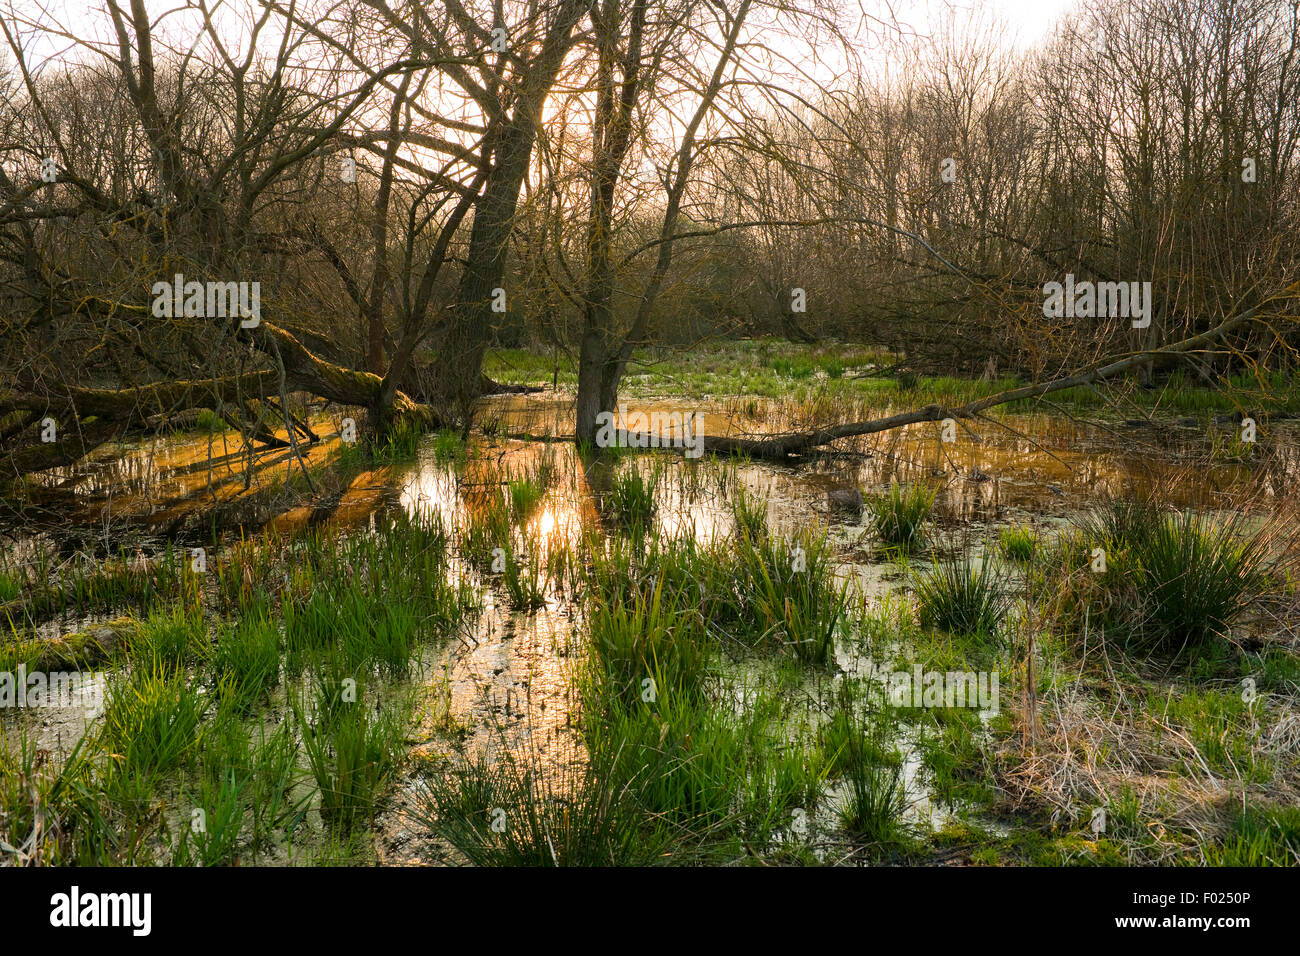 Softwood river meadow with willows (Salix sp.), spring, nature reserve Drömling, Lower Saxony, Germany - Stock Image